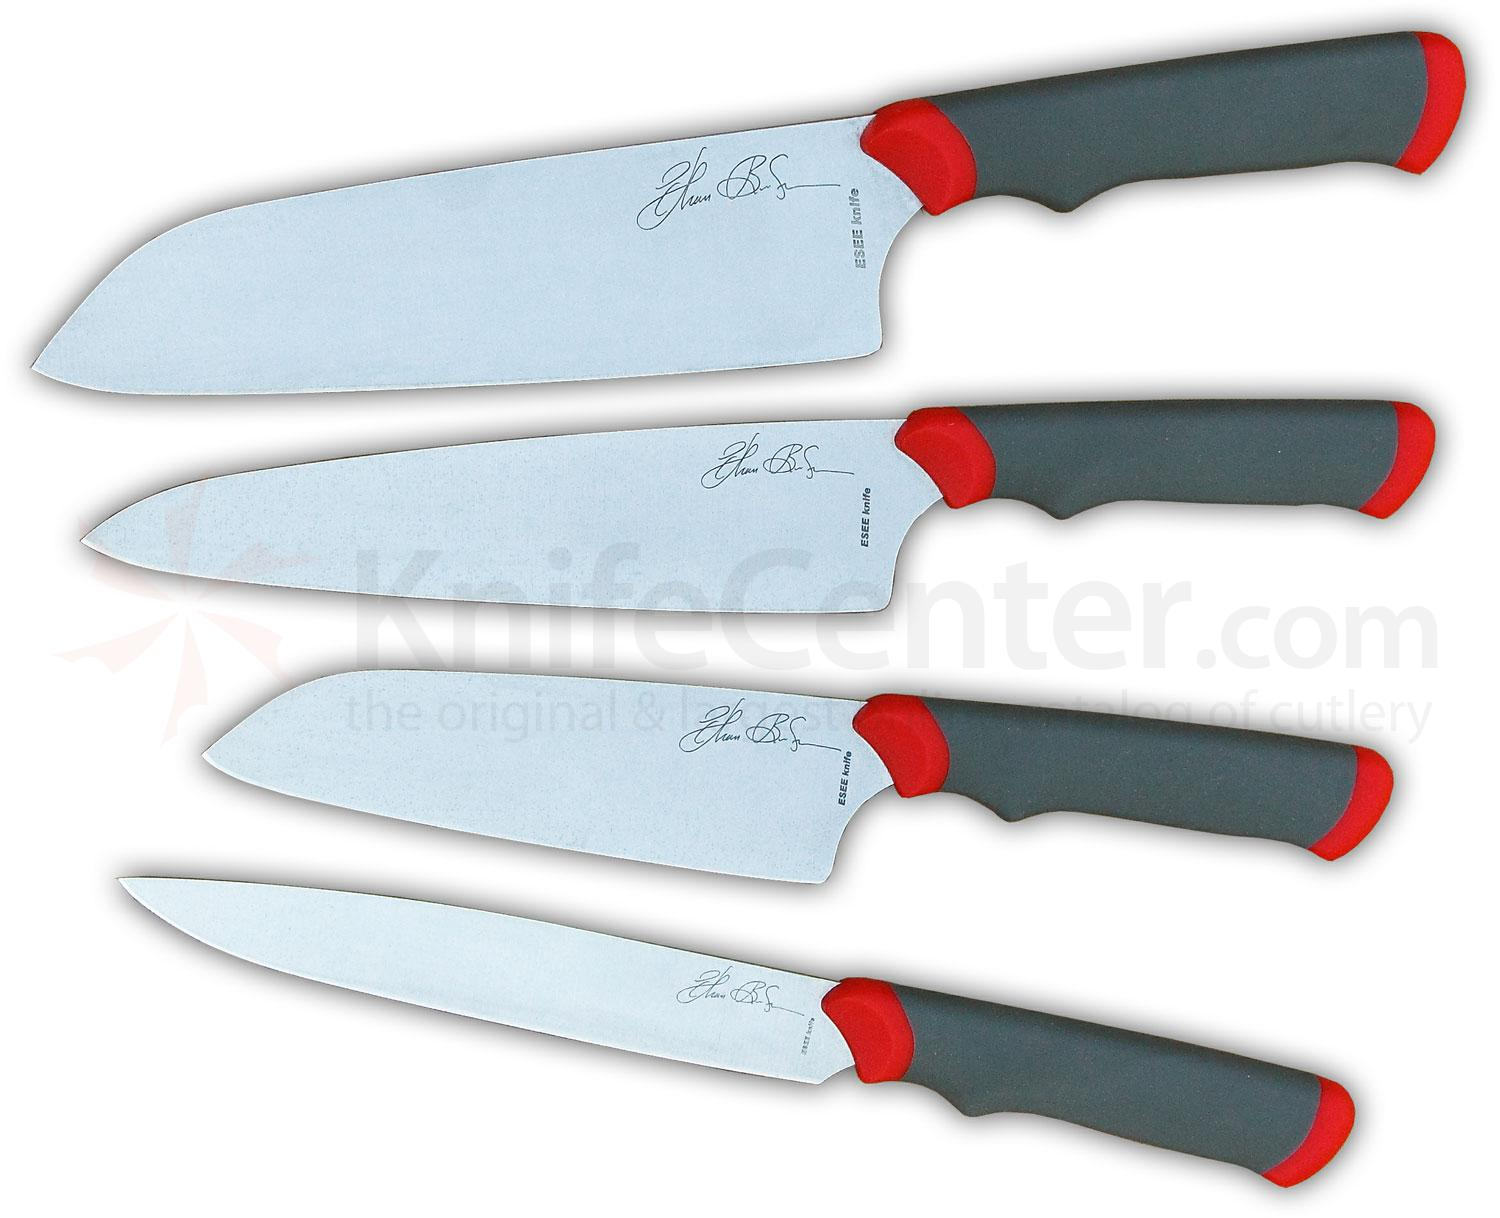 ESEE / Ethan Becker Signature Cooking Knives, Series 1 Set